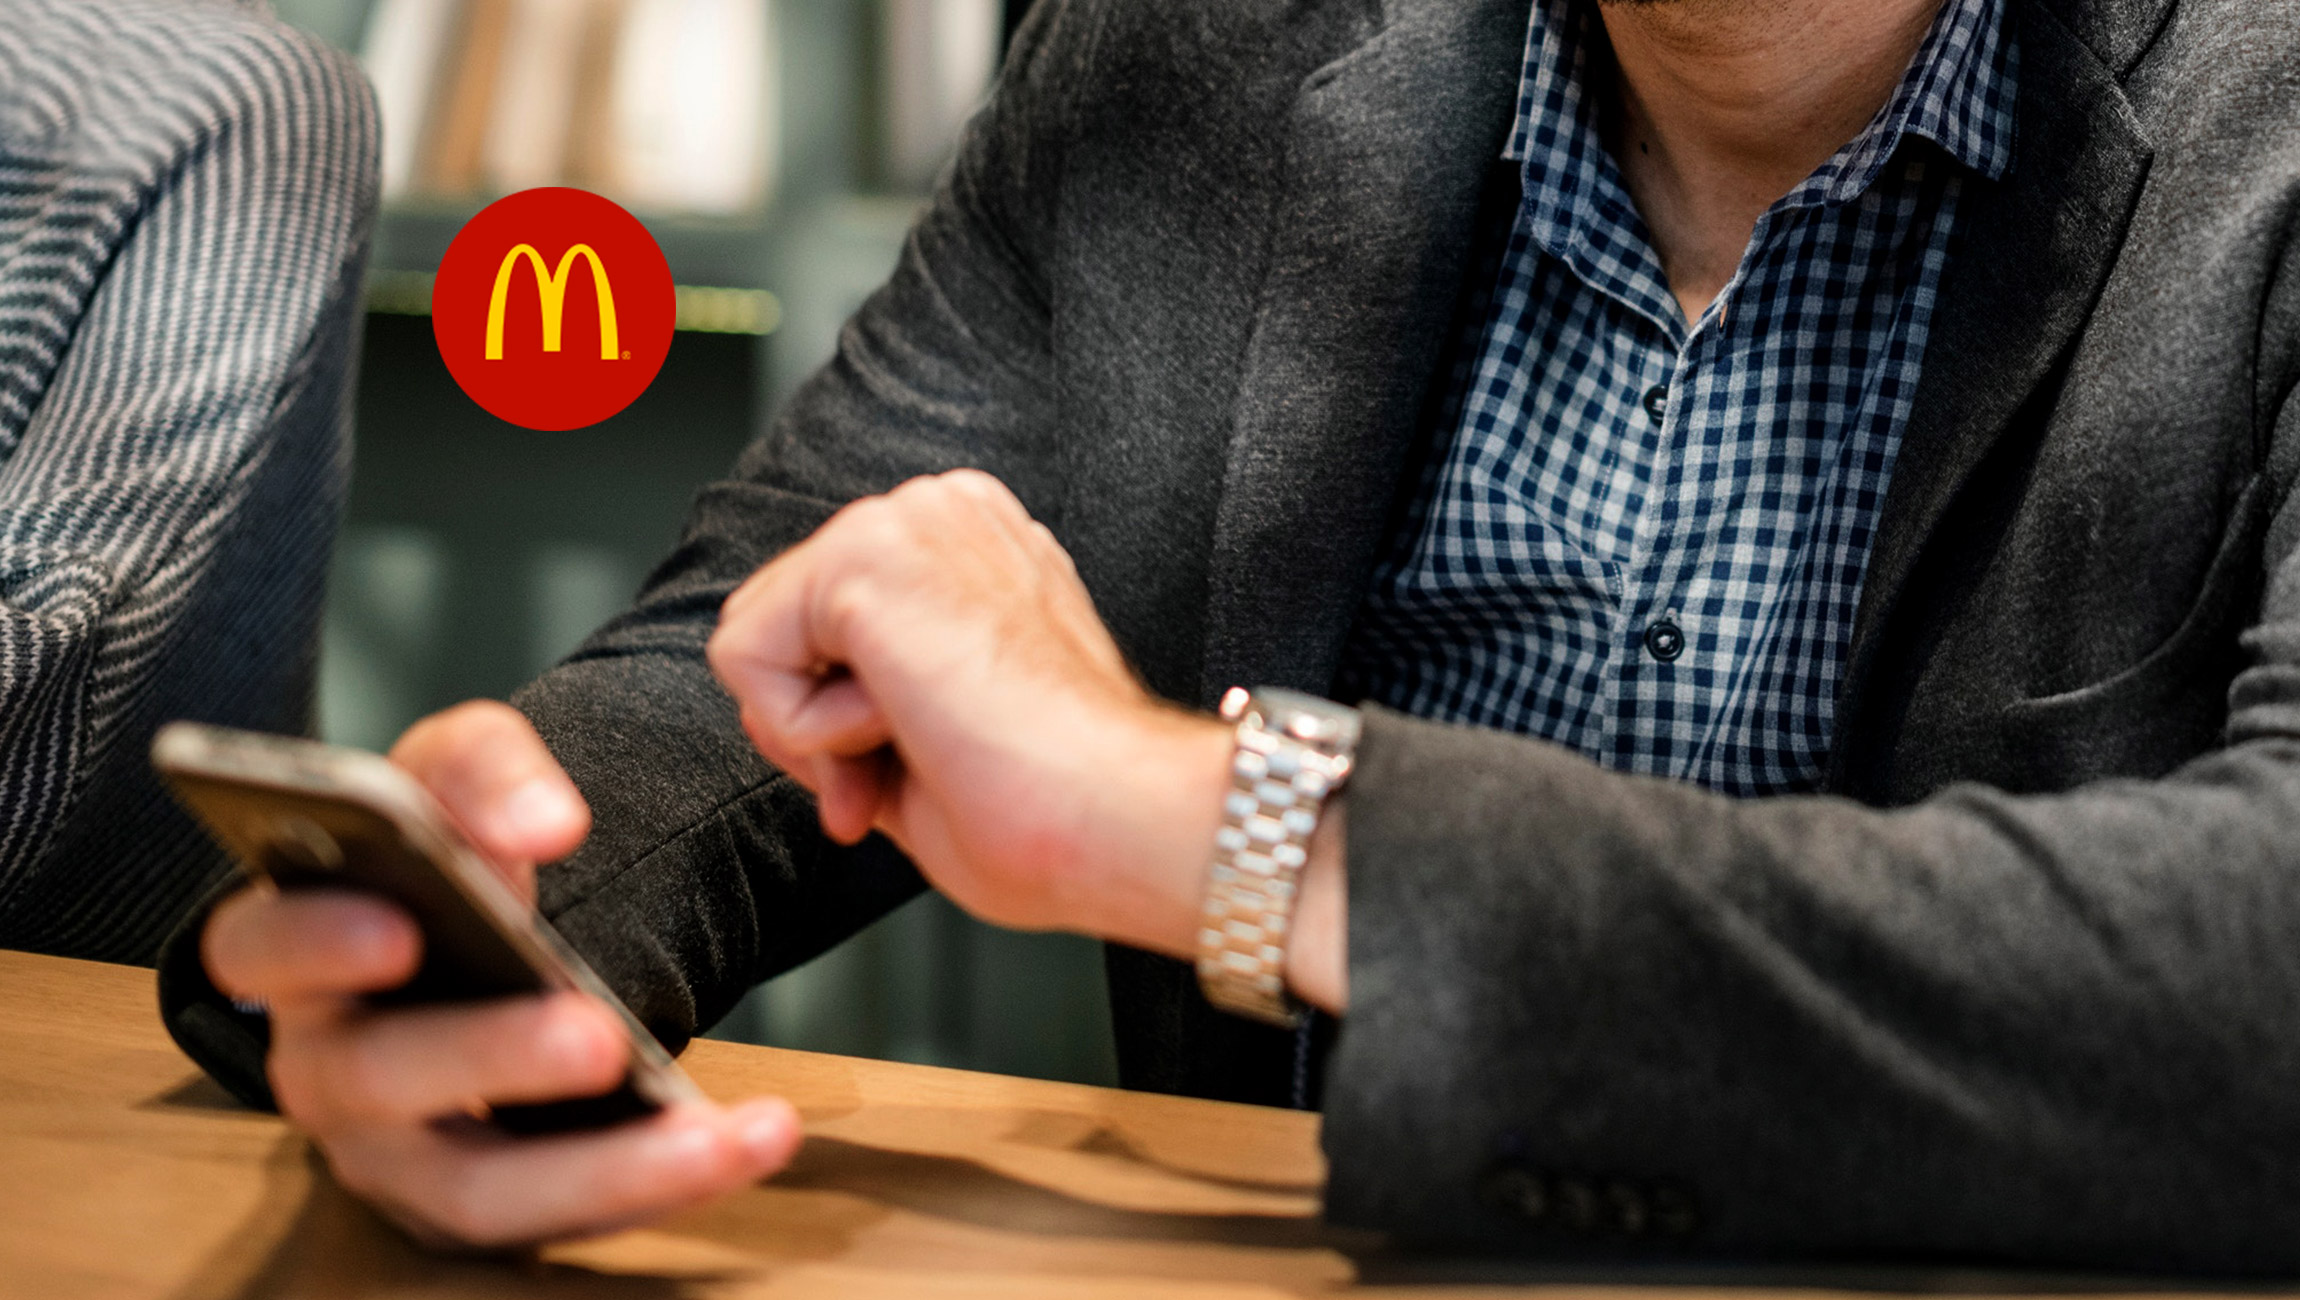 McDonald's to Acquire Dynamic Yield, Will Use Decision Technology to Increase Personalization and Improve Customer Experience